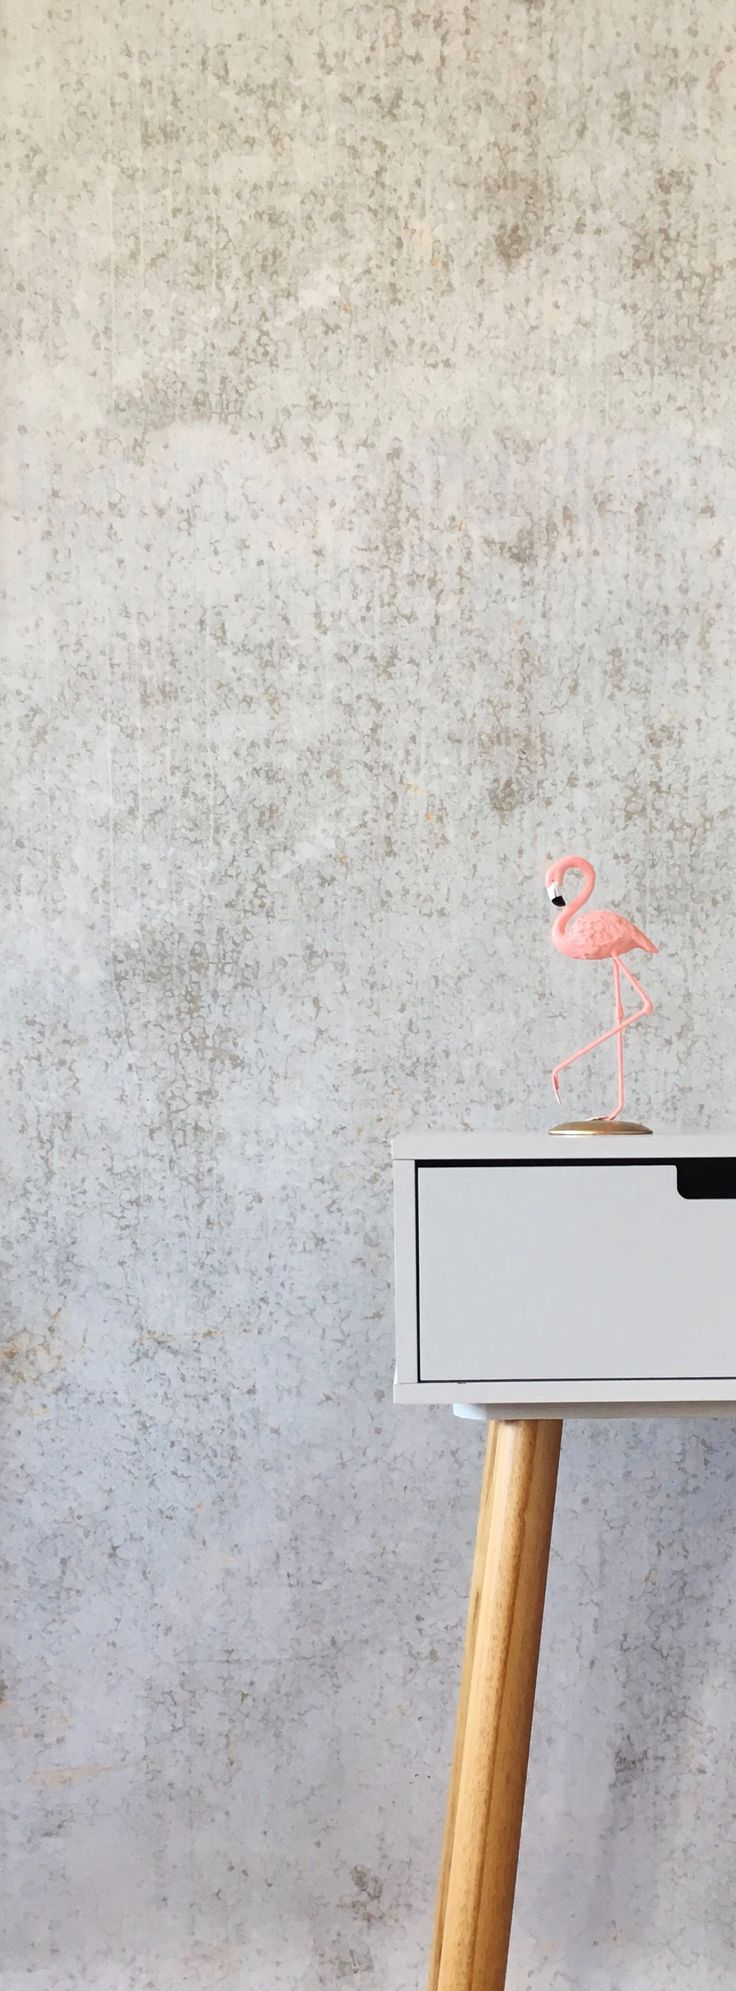 Our Concrete 2 wallpaper is so amazing in person! 😱❤️ #wallpaper #concrete #concretewallpaper #industrialdesign #industrial #flamingo #selfadhesivewallpaper #removablewallpaper #walldecor